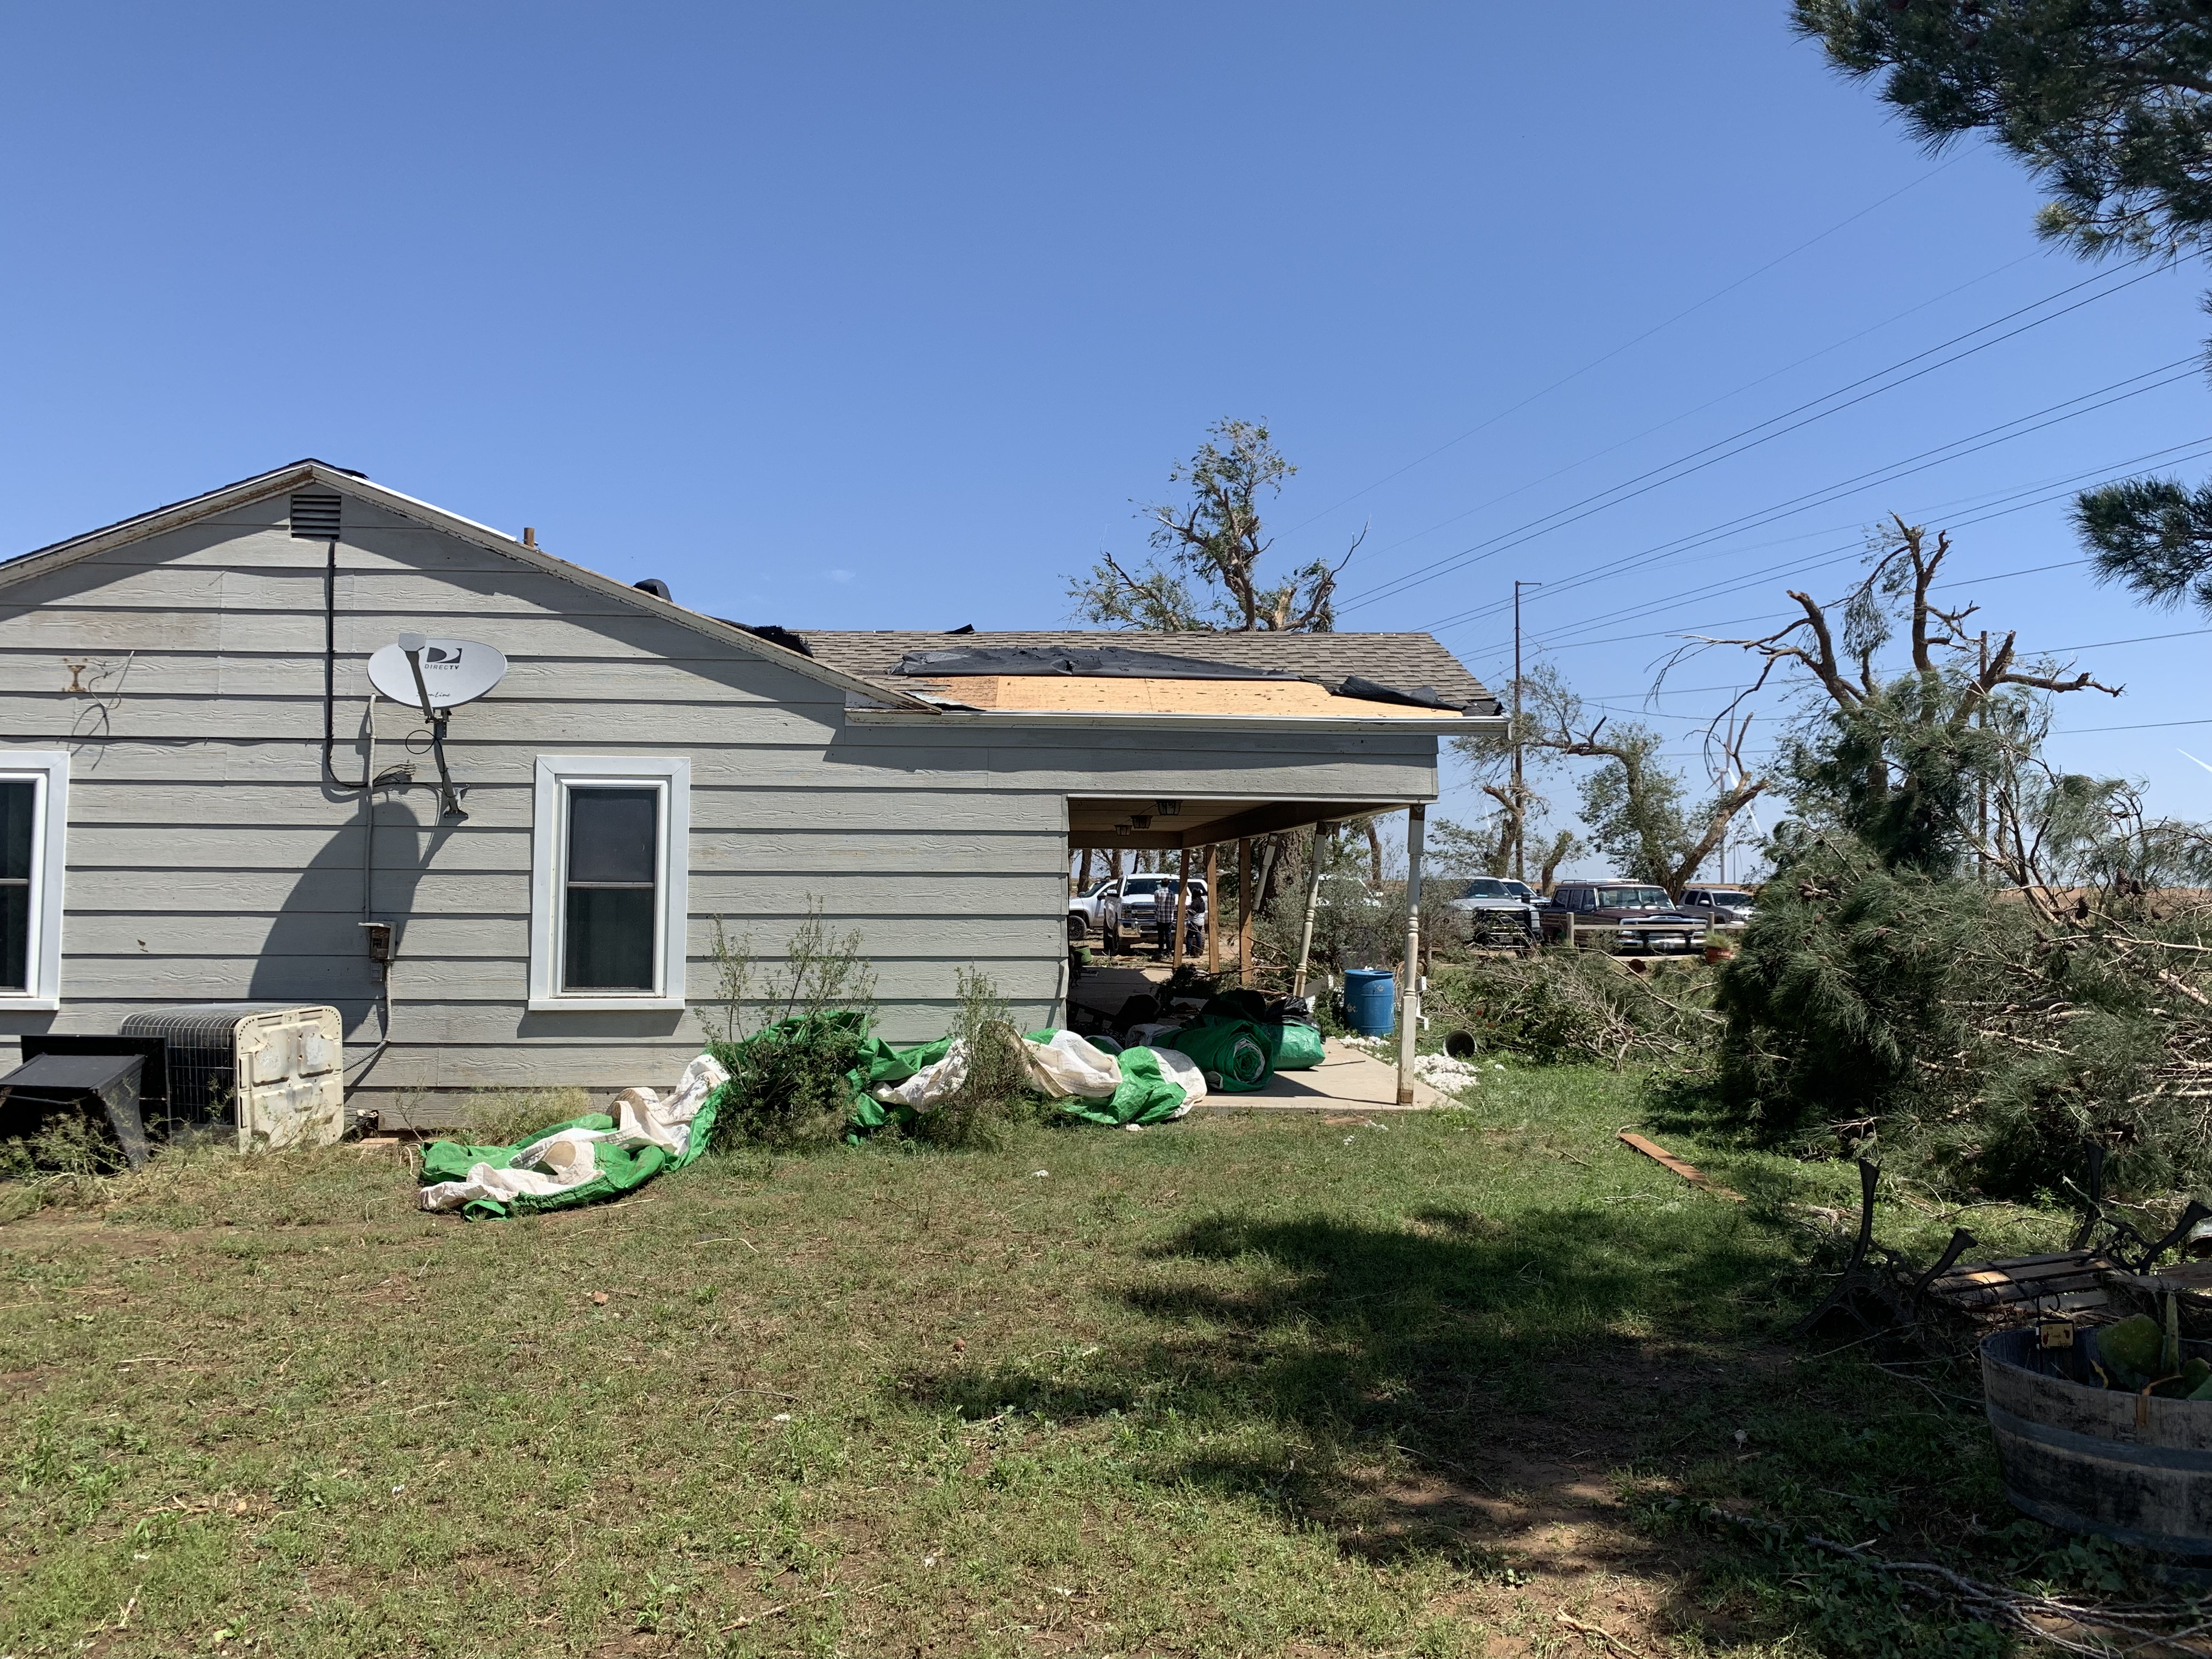 Photo of damage sustained from a tornado that tracked north and east of Tahoka on 5 May 2019.